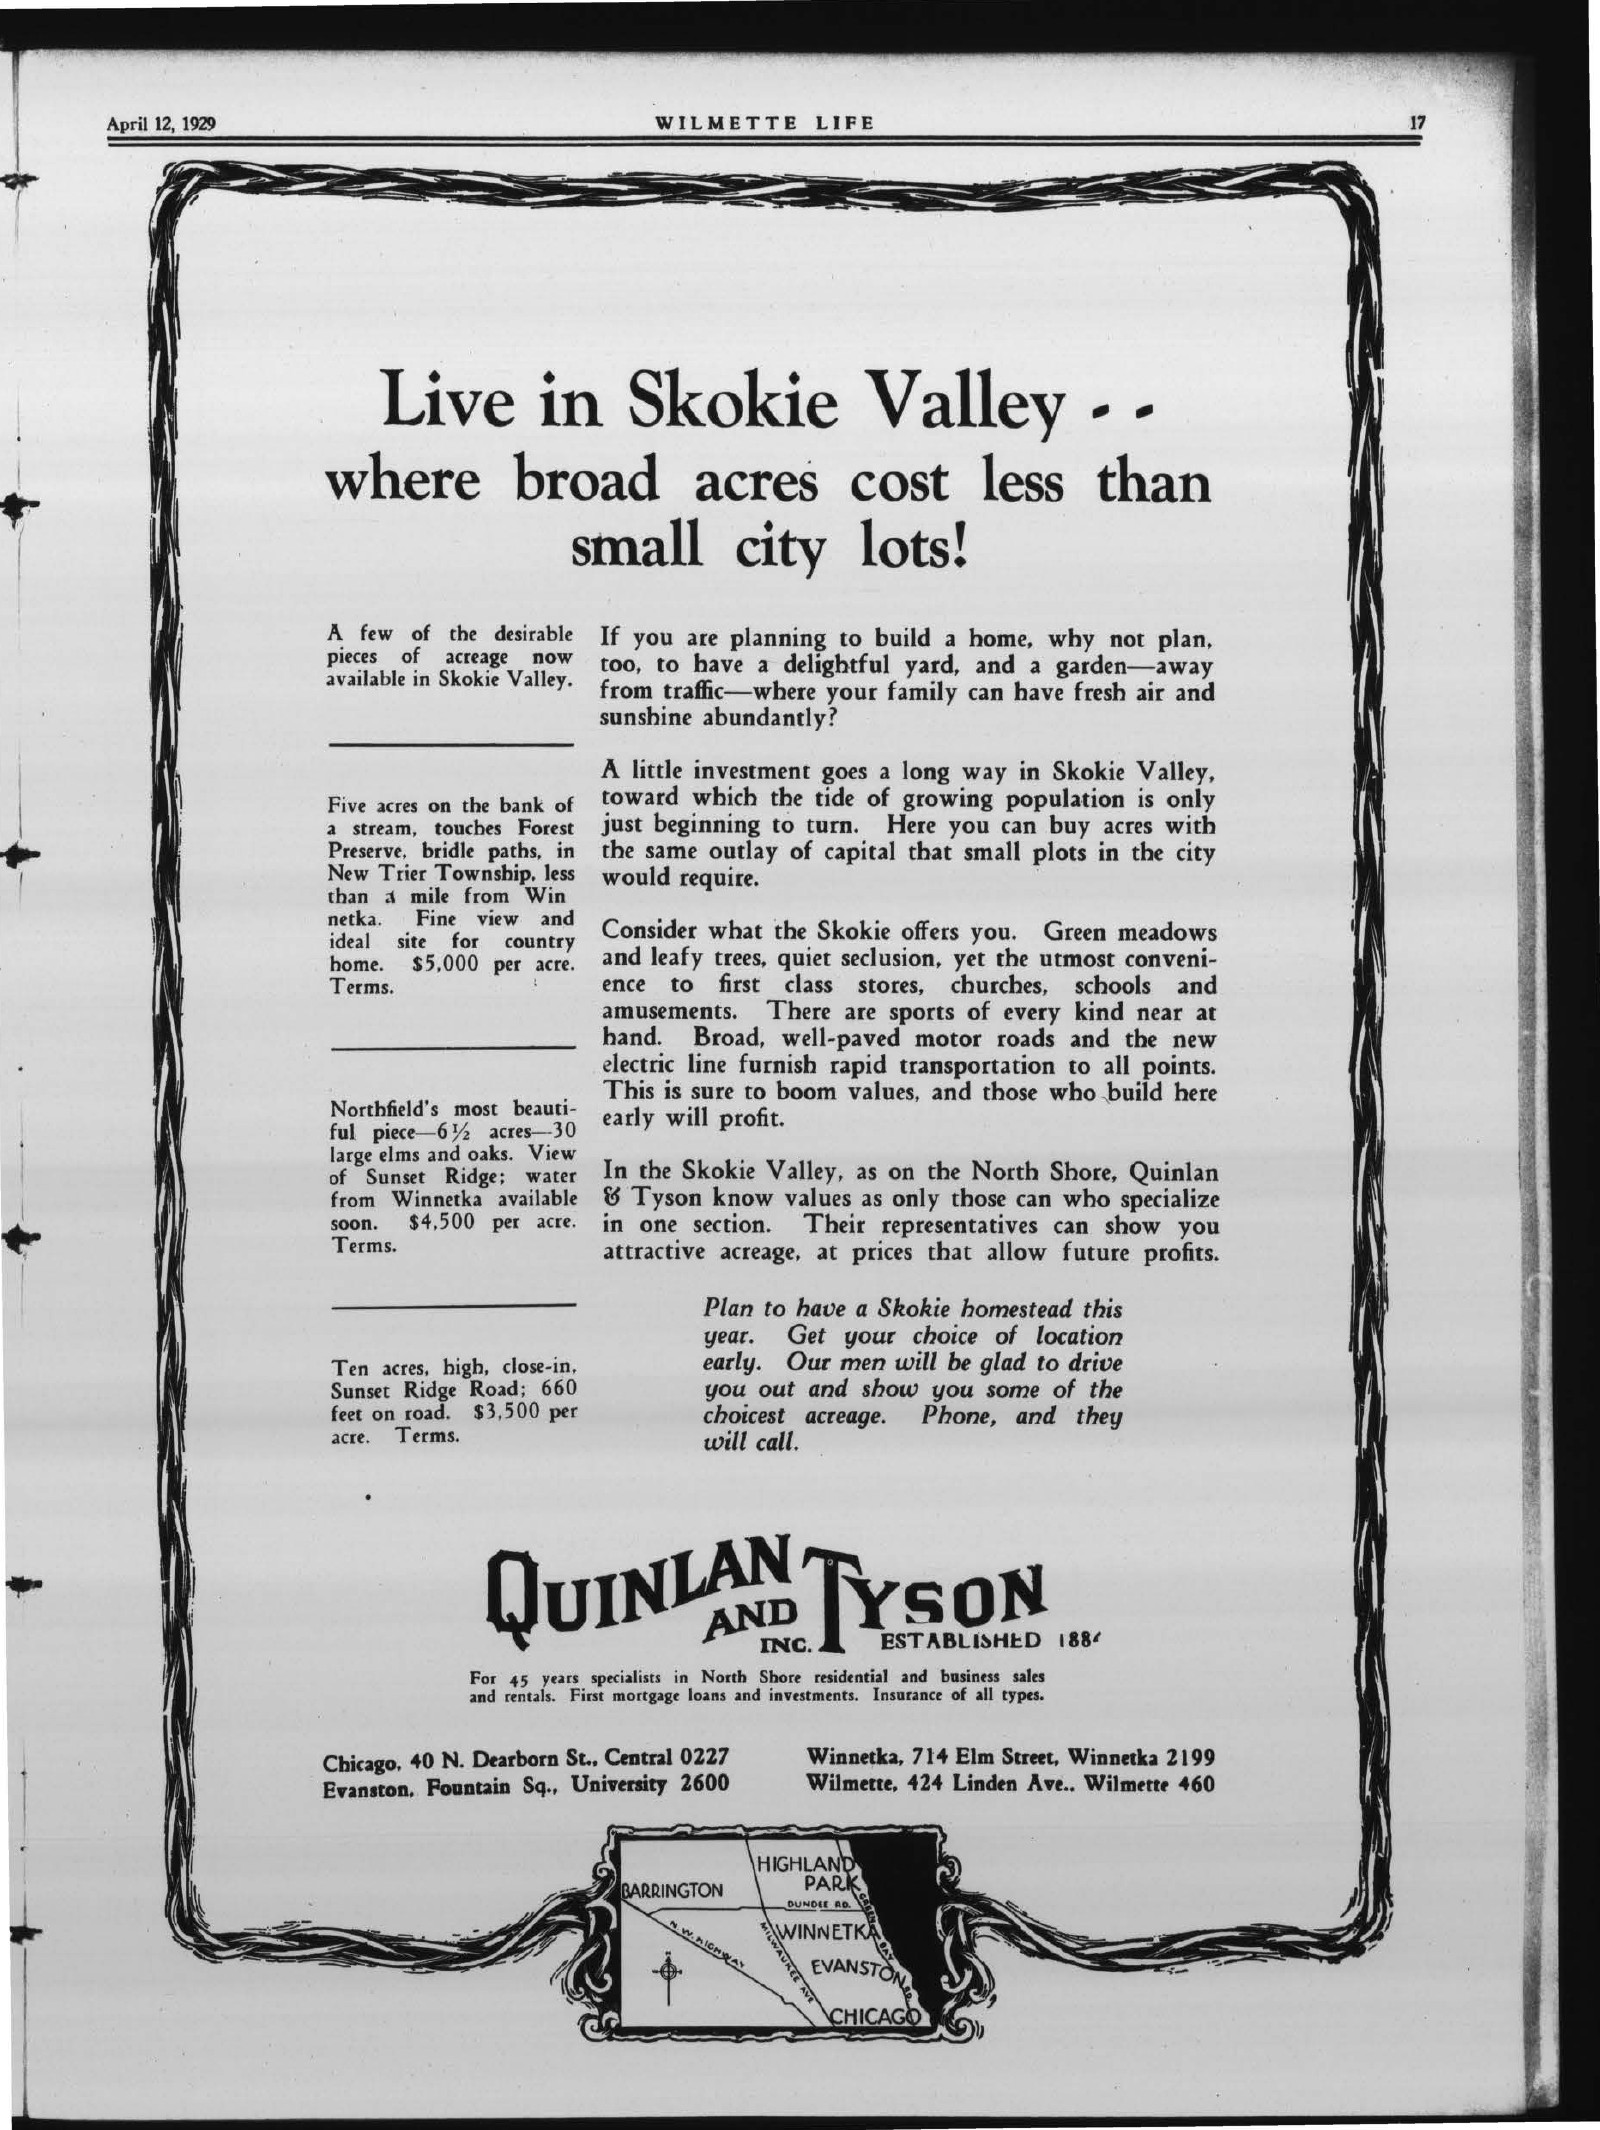 Wilmette Life (Wilmette, Illinois), 12 Apr 1929